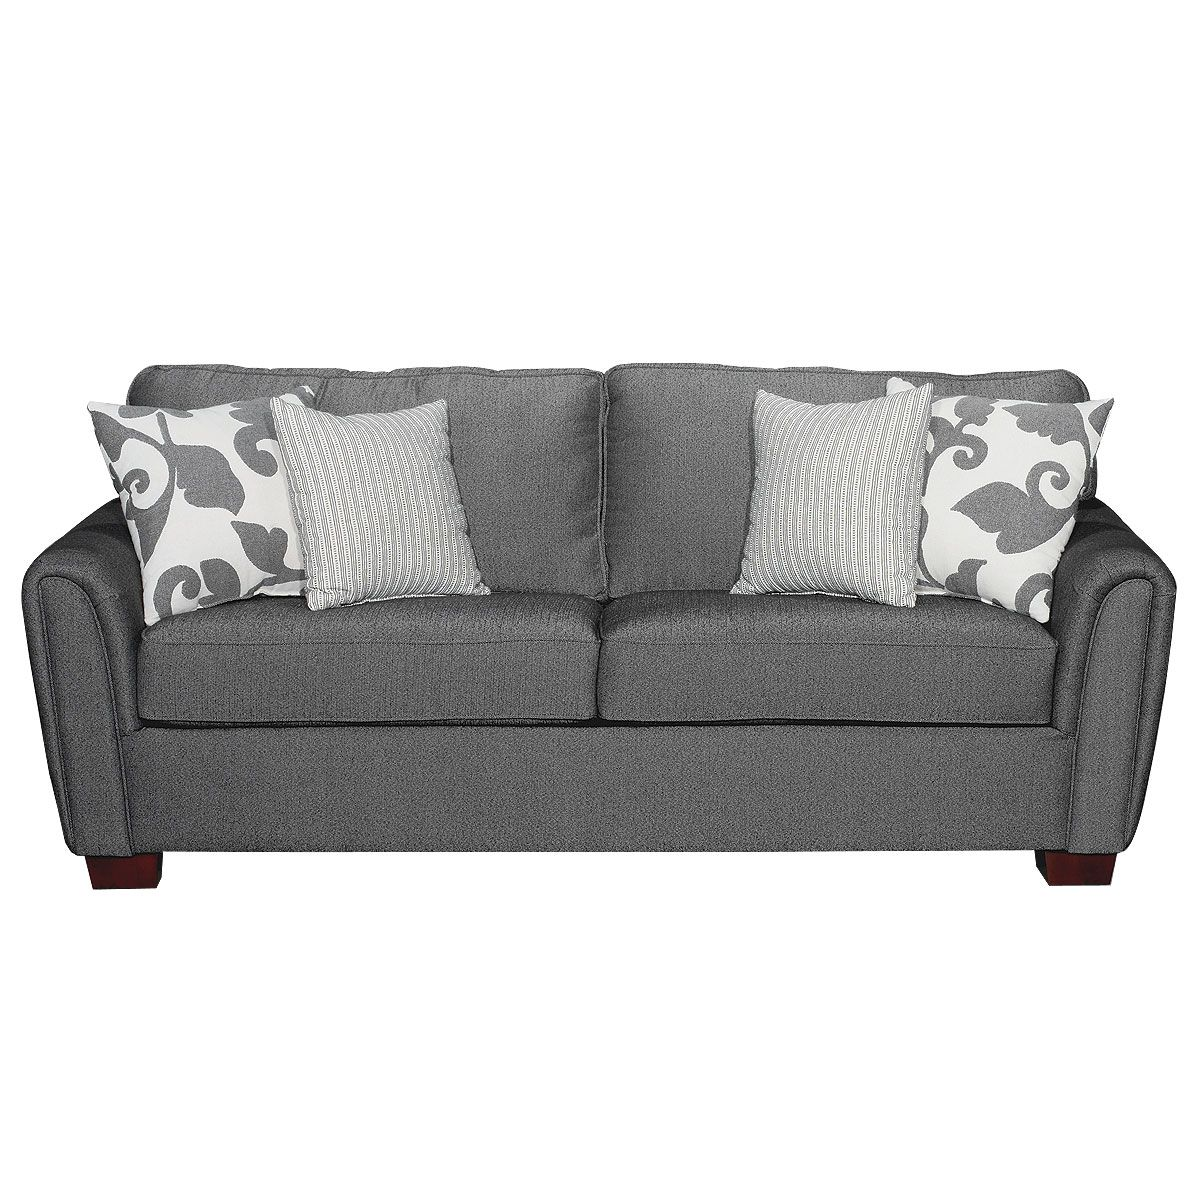 ASH 50700/SECTIONAL   Ashley Viva Chocolate Sectional | Furniture Source  Des Moines, IA | Furniture For House | Pinterest | Ash, Living Room  Furniture And ...